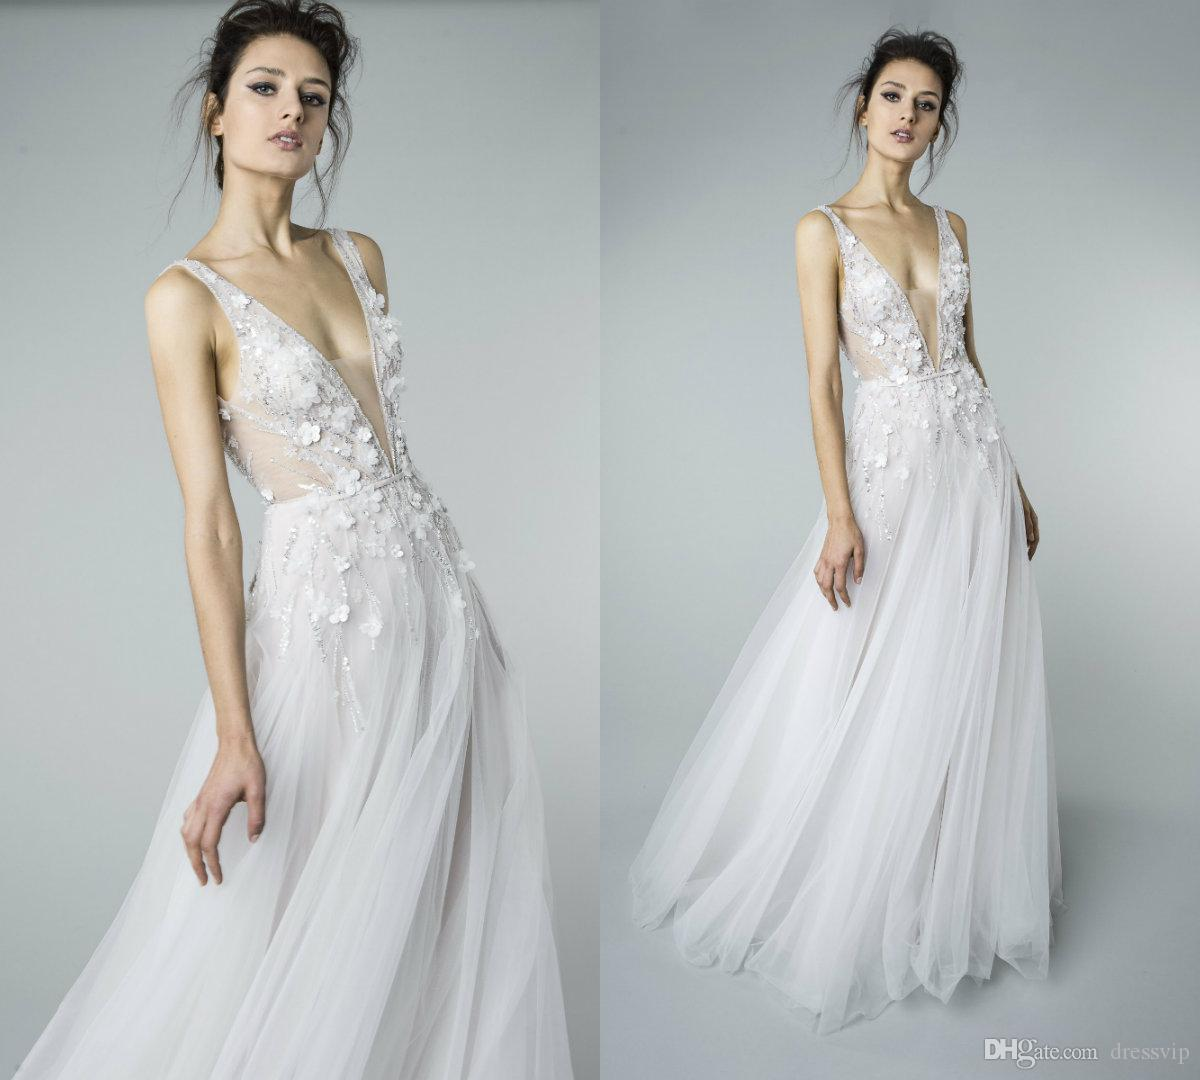 39937c5e78f Discount 2018 Mira Zwillinger Boho Wedding Dresses 3D Floral Applique  Beaded Sequins Deep V Neck A Line Beach Bridal Dress Floor Length Wedding  Gown Vintage ...